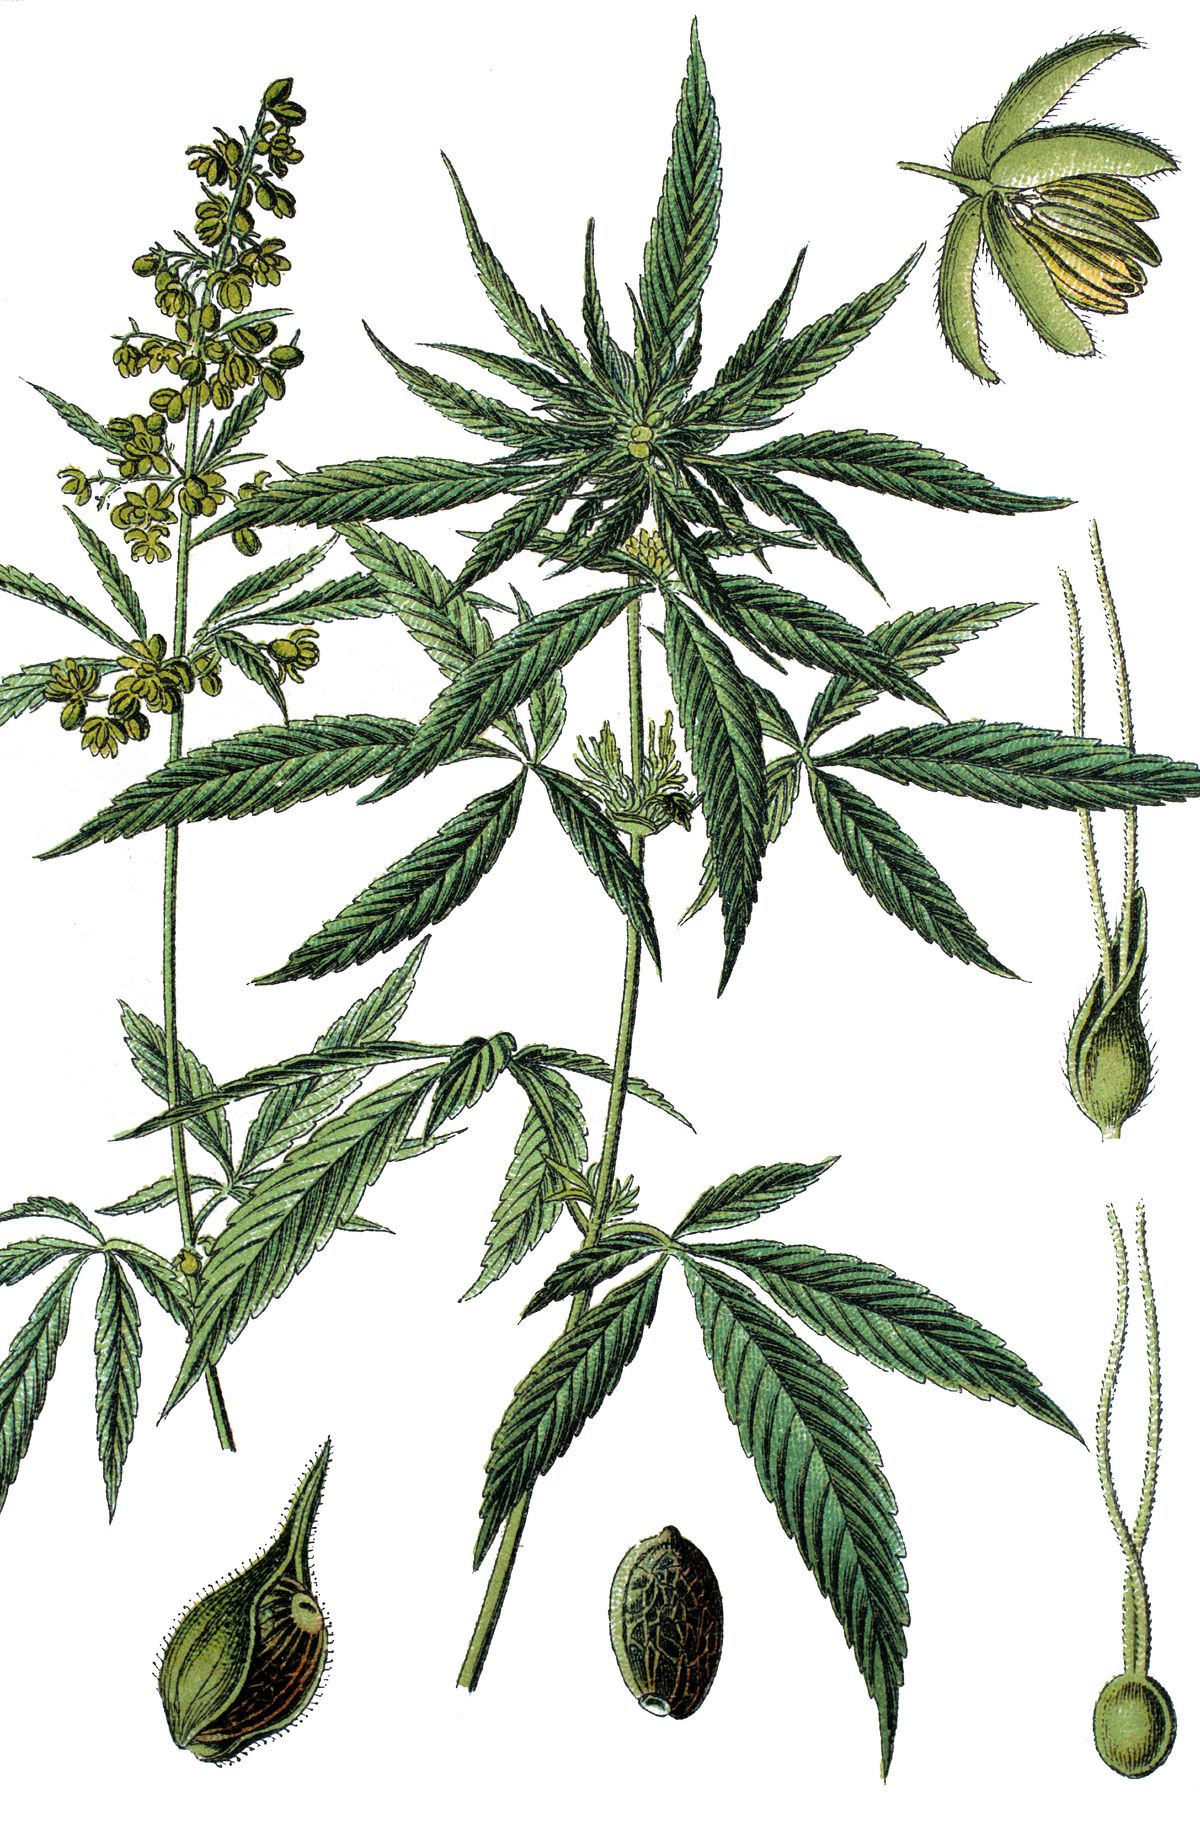 Pictures of marijuana plants from the 1890s.